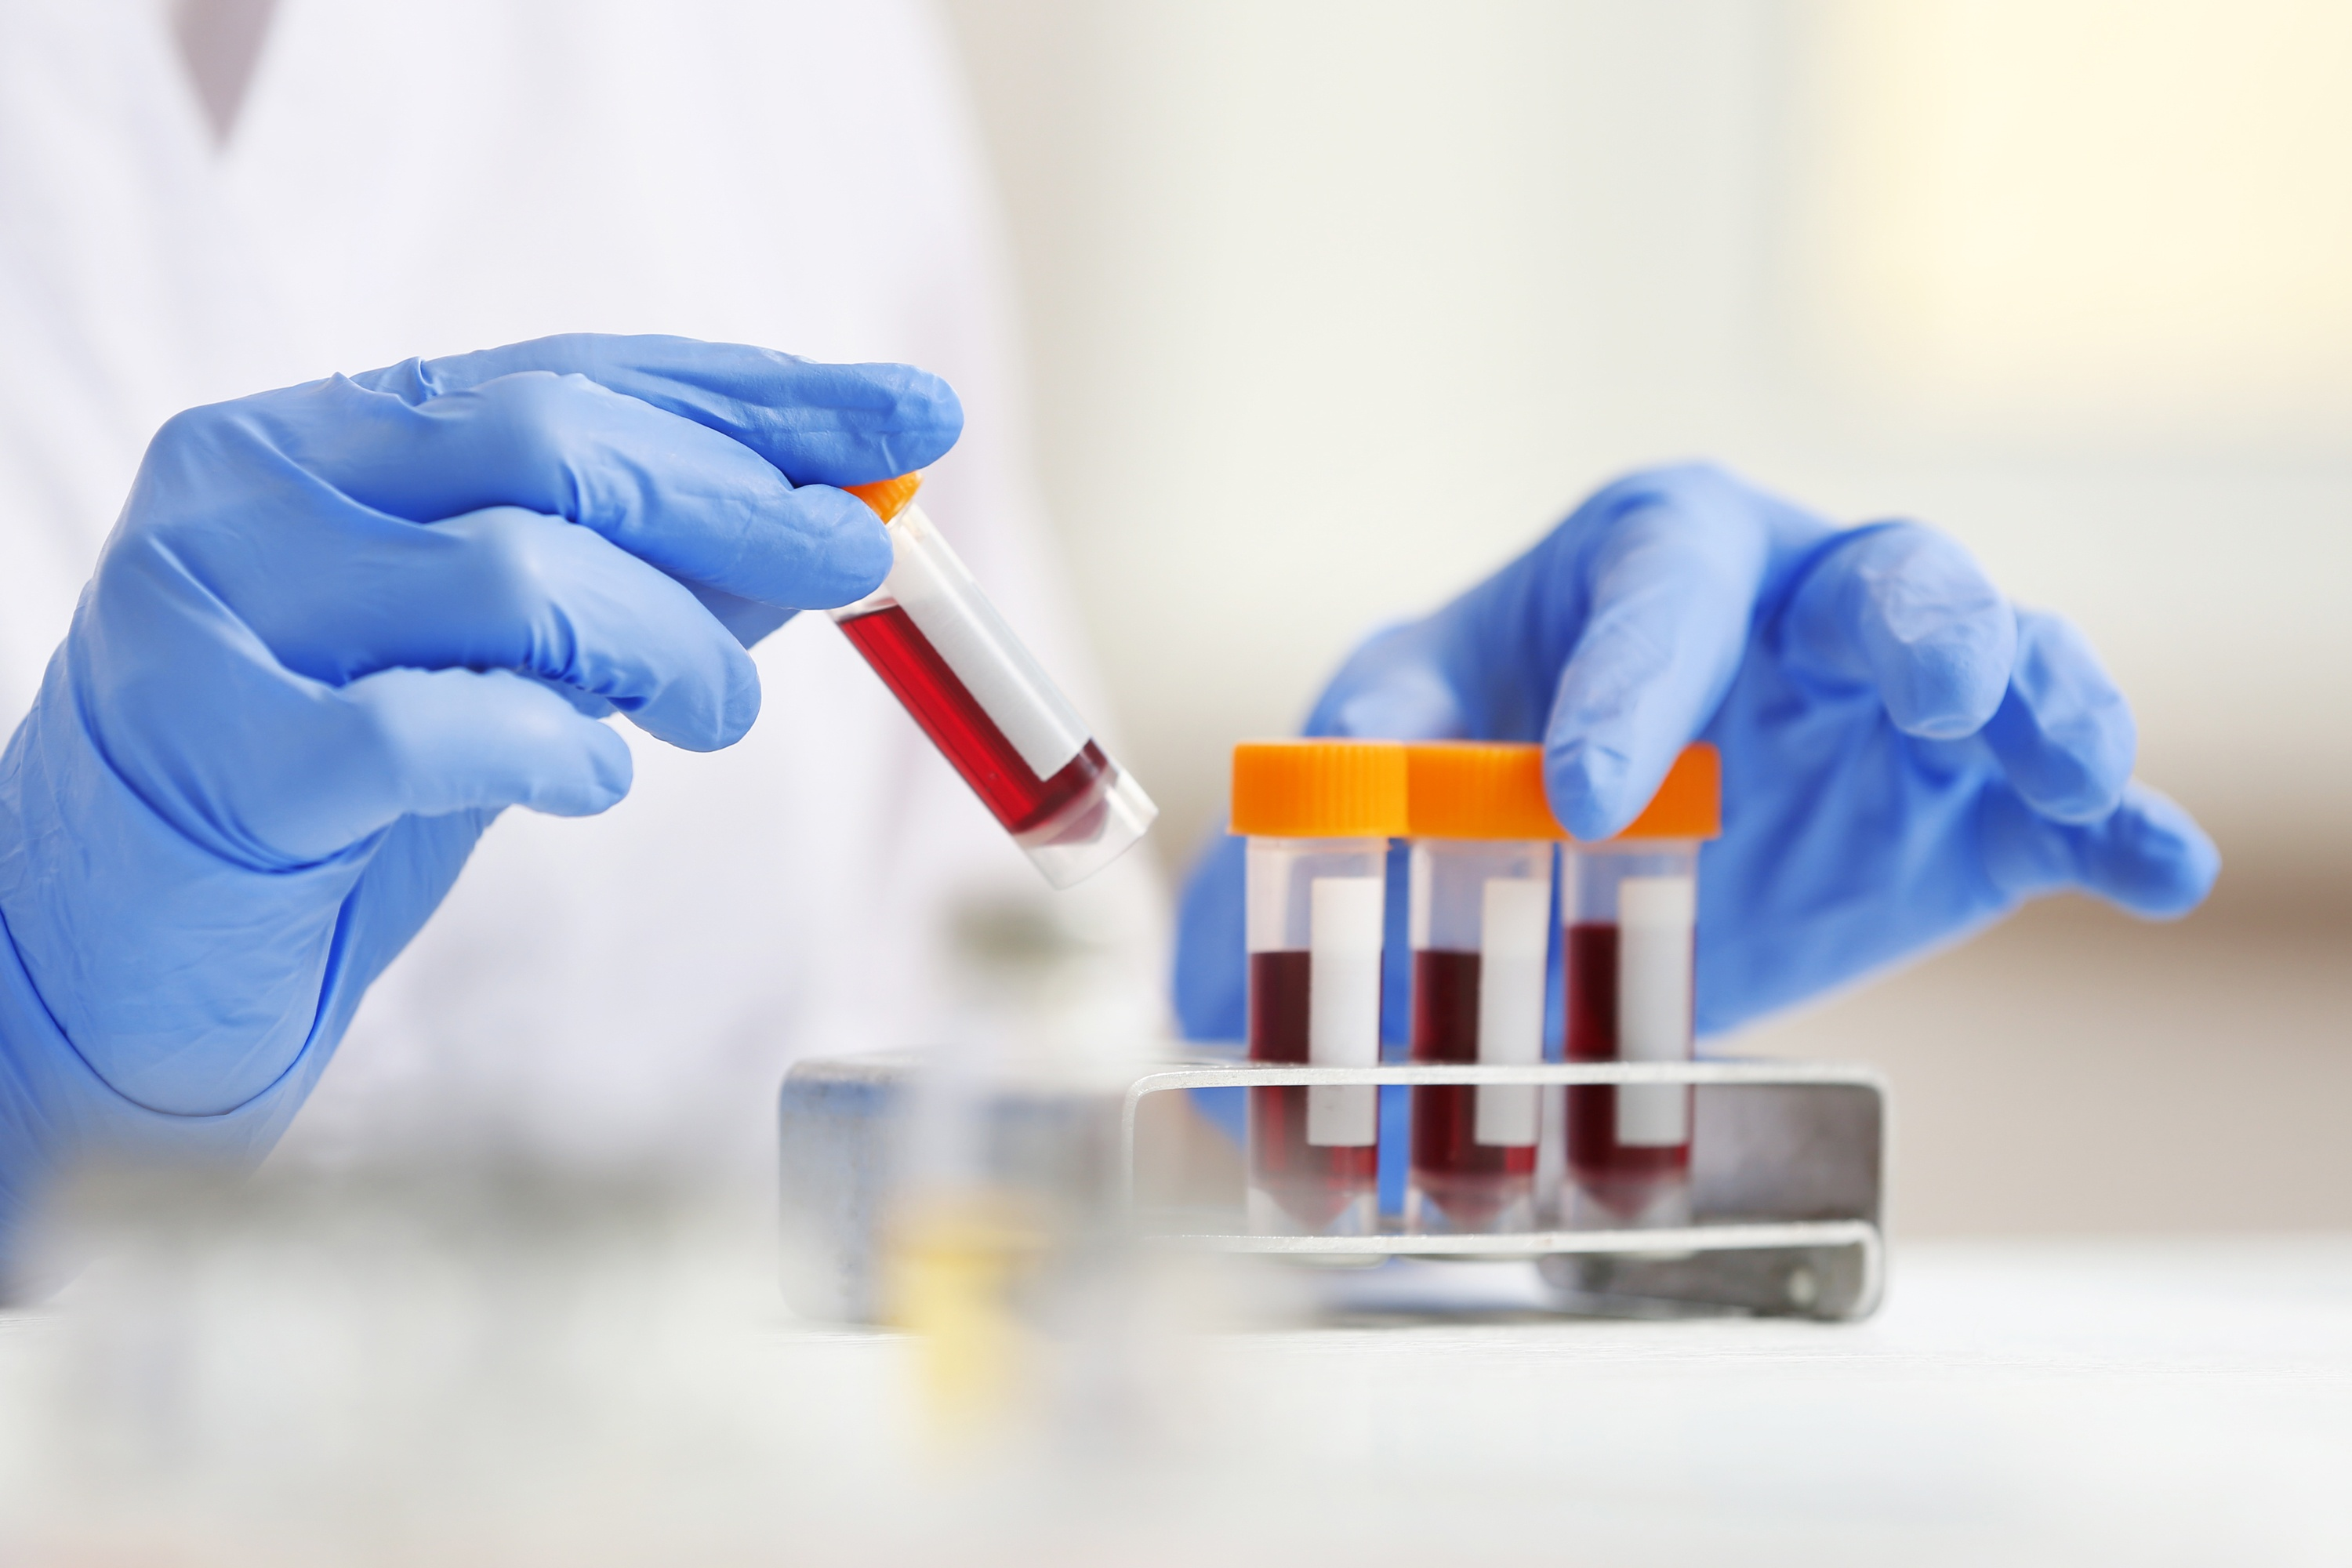 C Reactive Protein (CRP) Blood Test